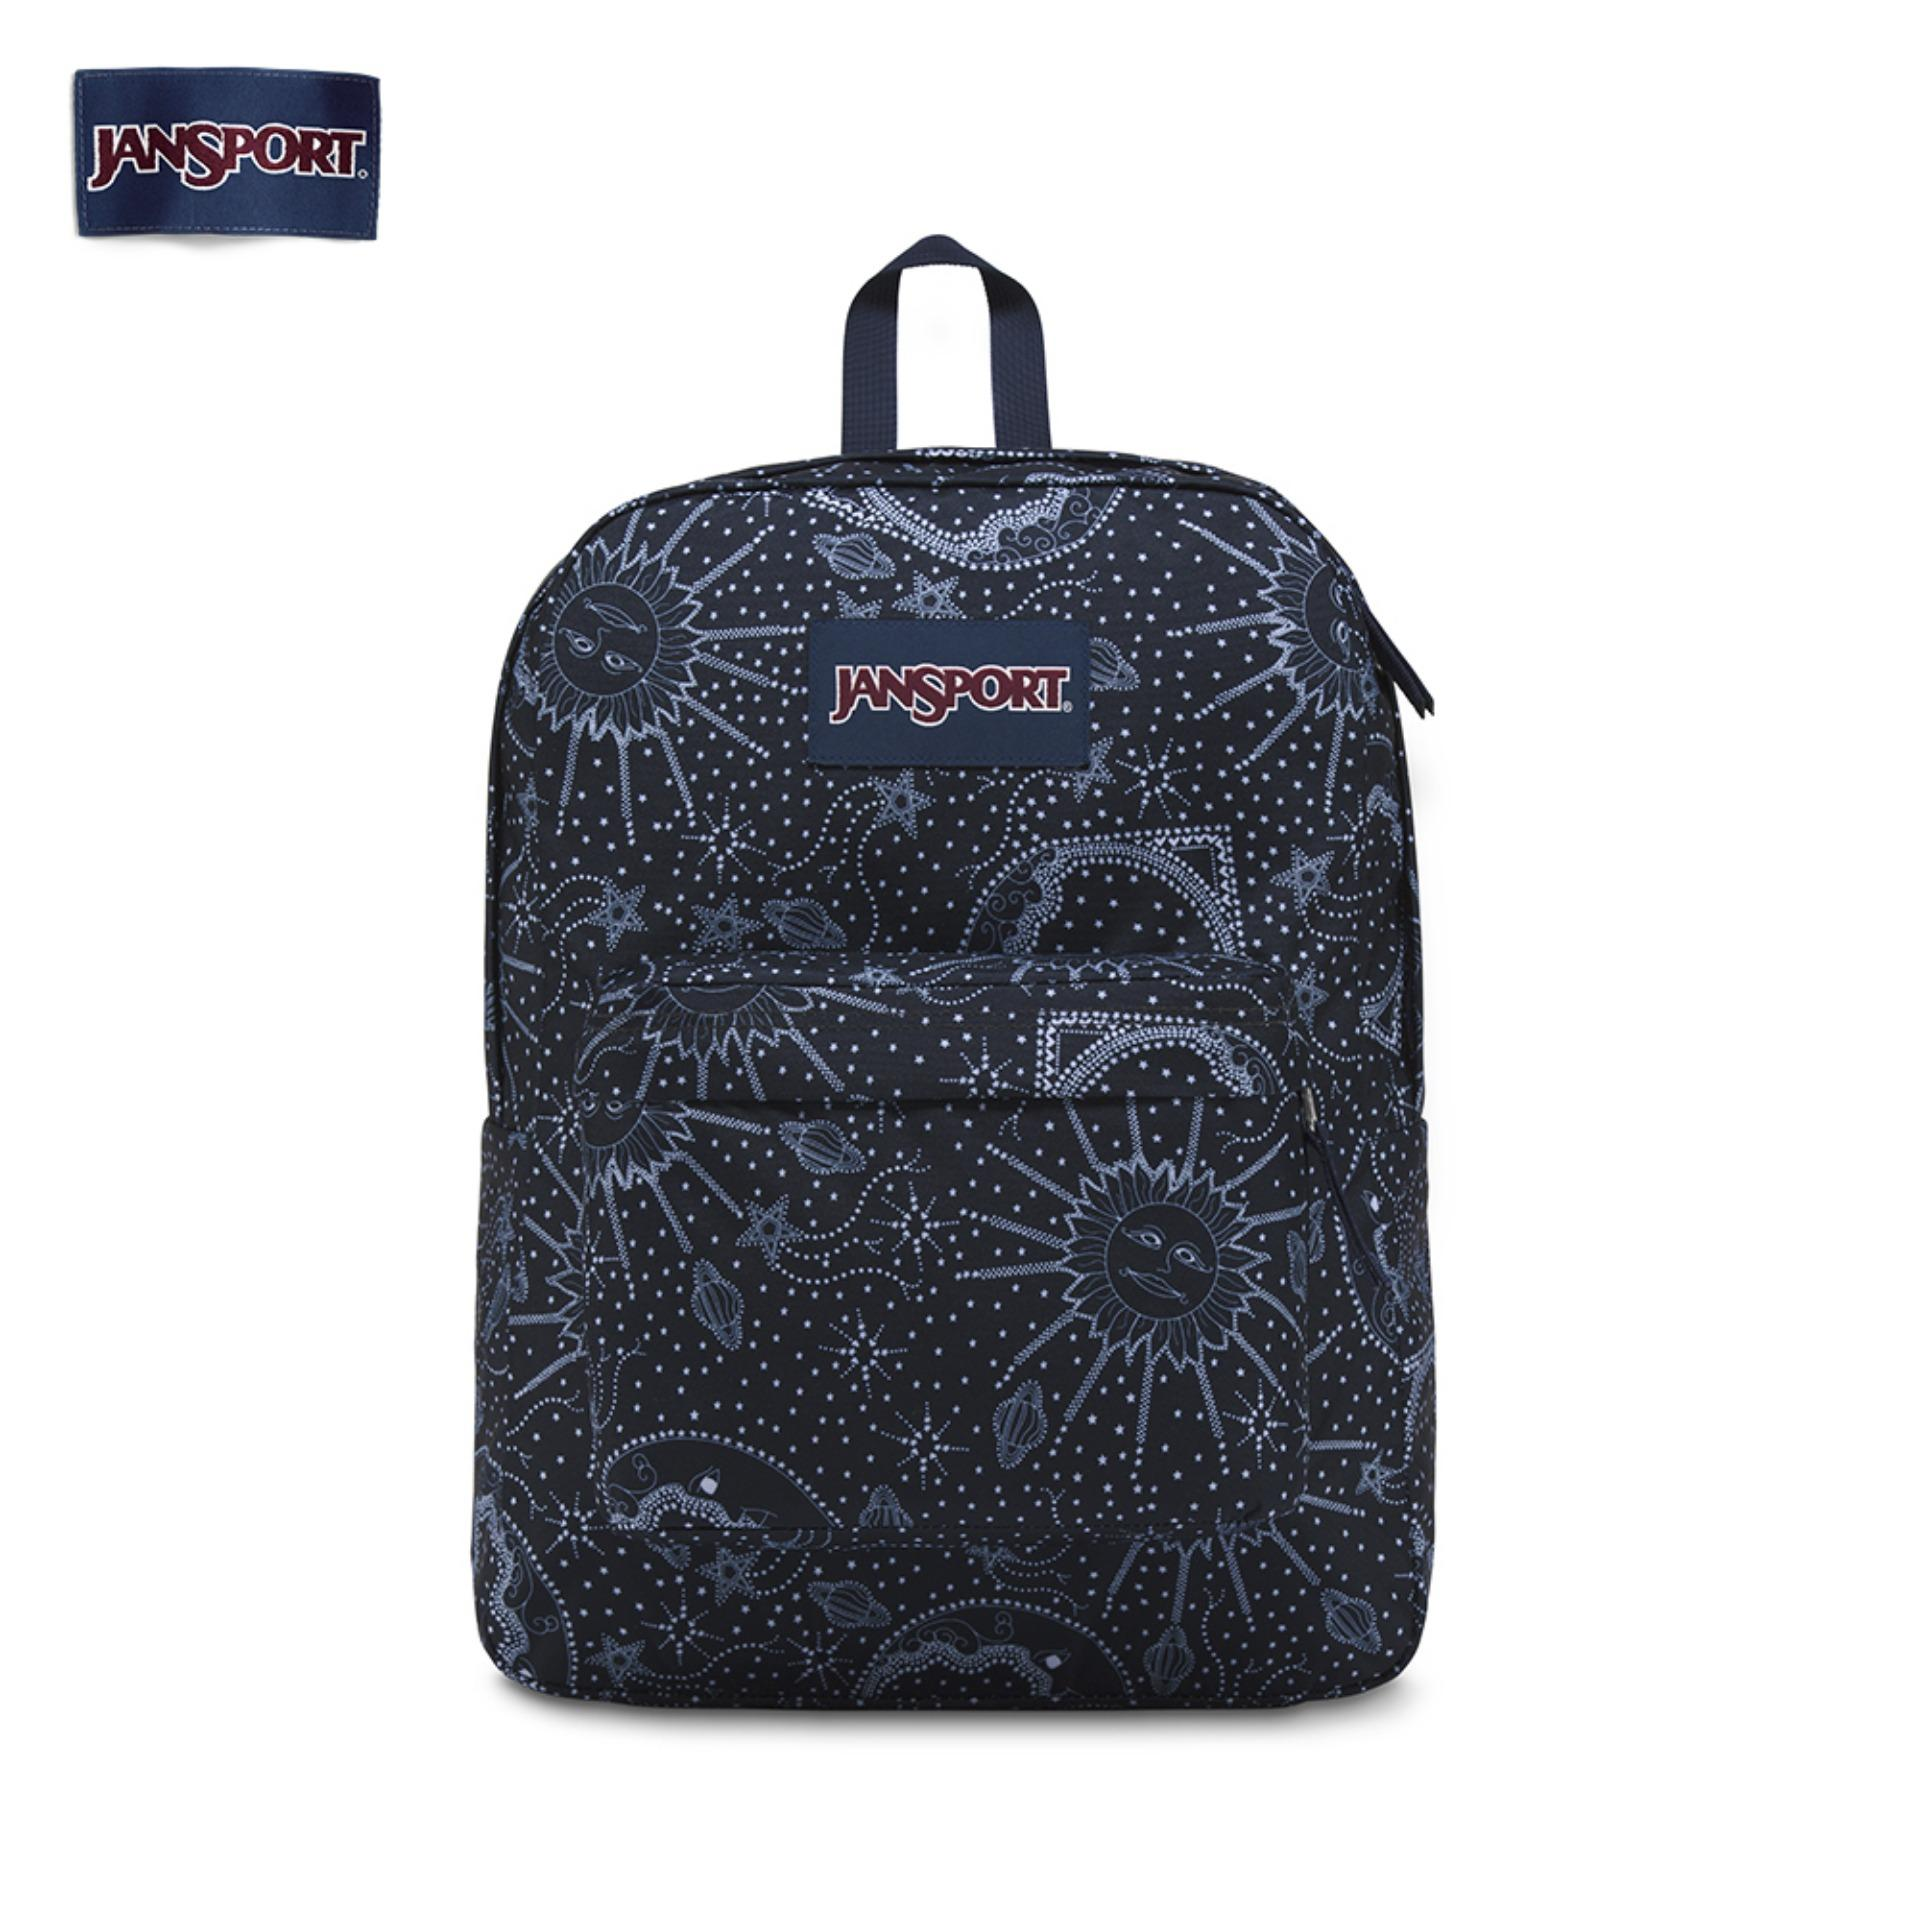 91fc84cbd JanSport Philippines: JanSport price list - JanSport Bags & Backpacks for  sale | Lazada